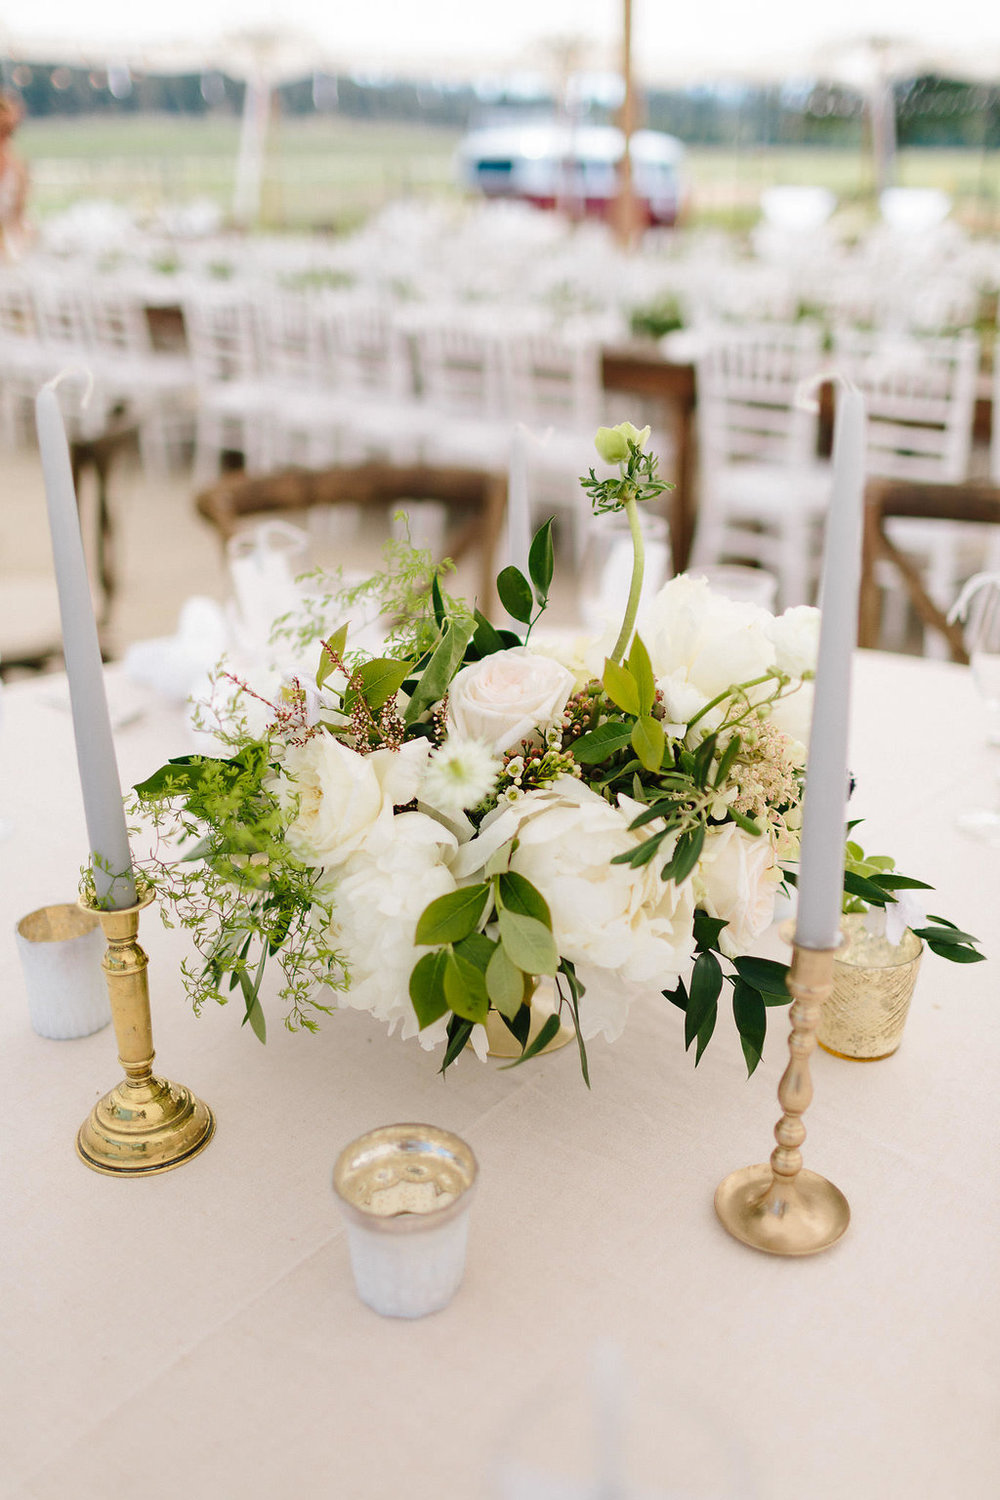 Minutes before guests arrived, the flowers came out from their cool hiding spot.  Centerpieces were placed on to the round tables.